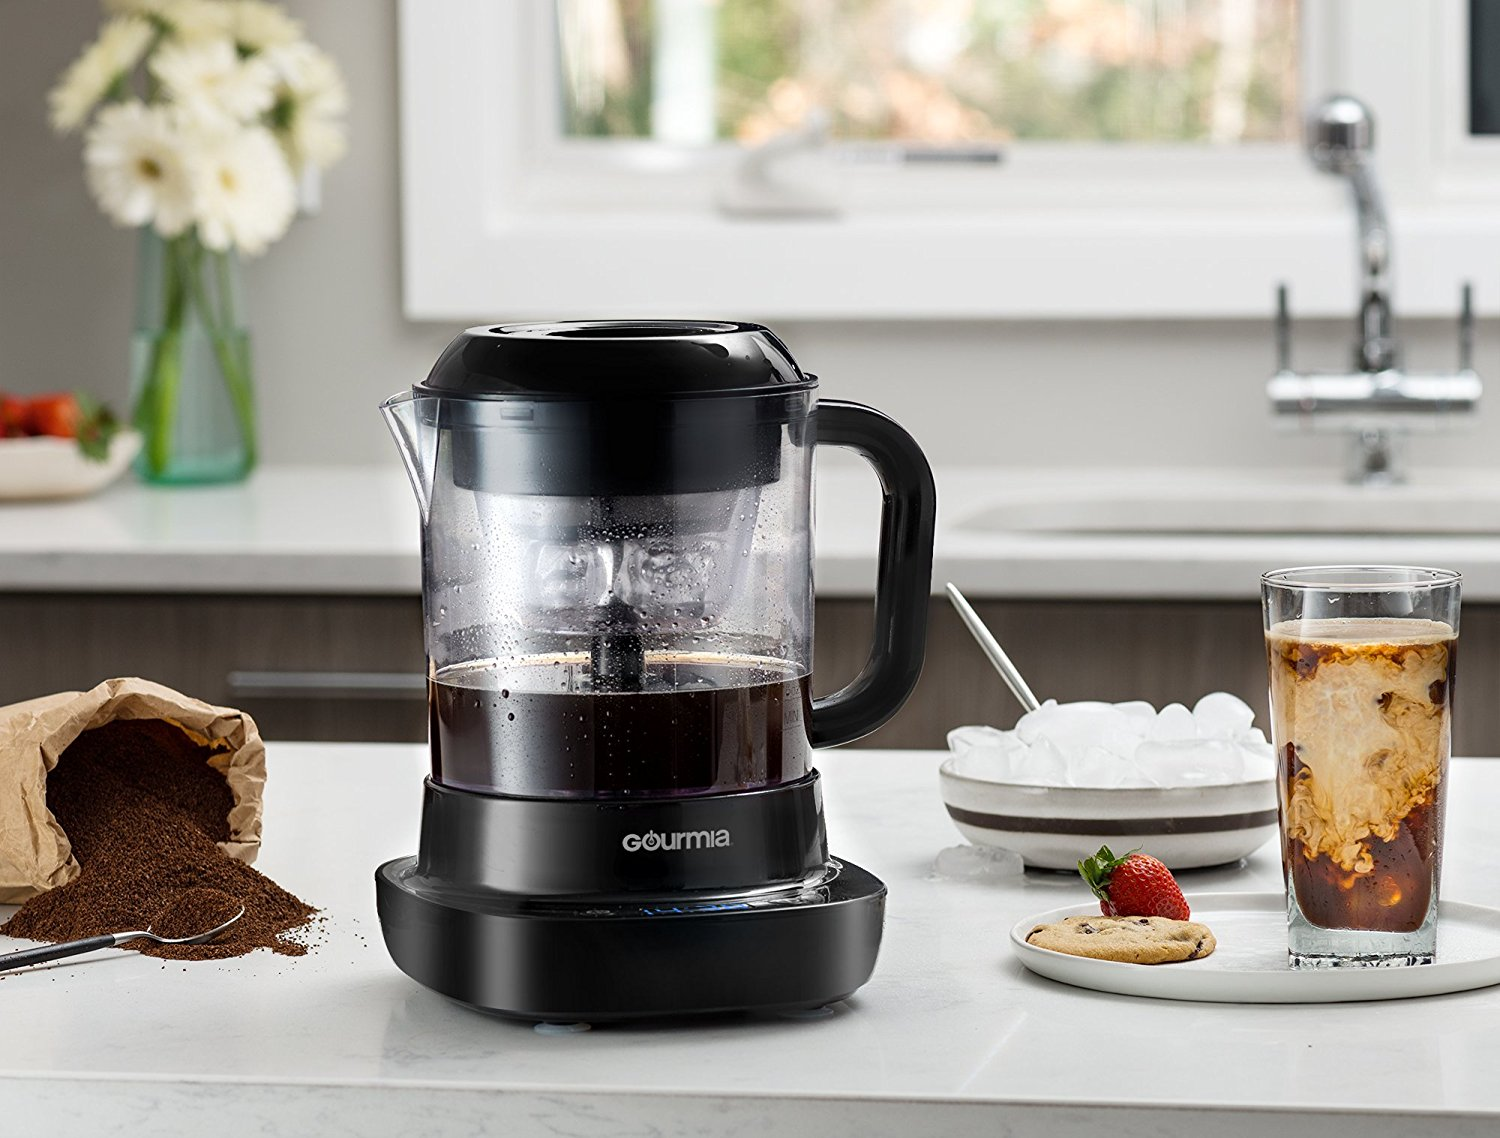 Gourmia Gcm6800 Automatic Cold Brew Coffee Maker 10 Minutes Fast